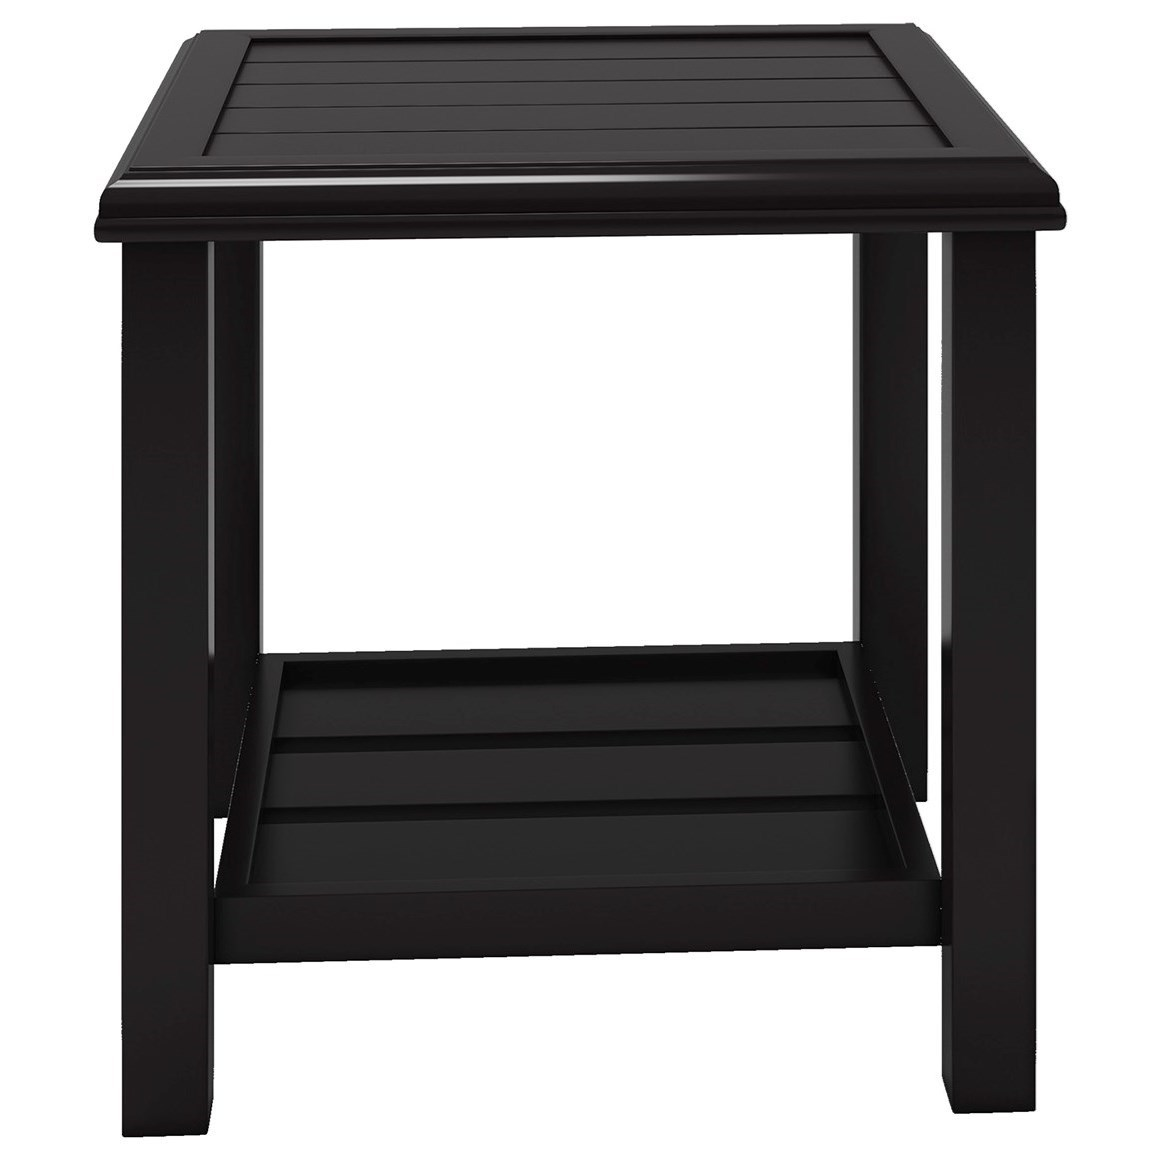 Signature Design by Ashley Castle Island Square End Table - Item Number: P414-702